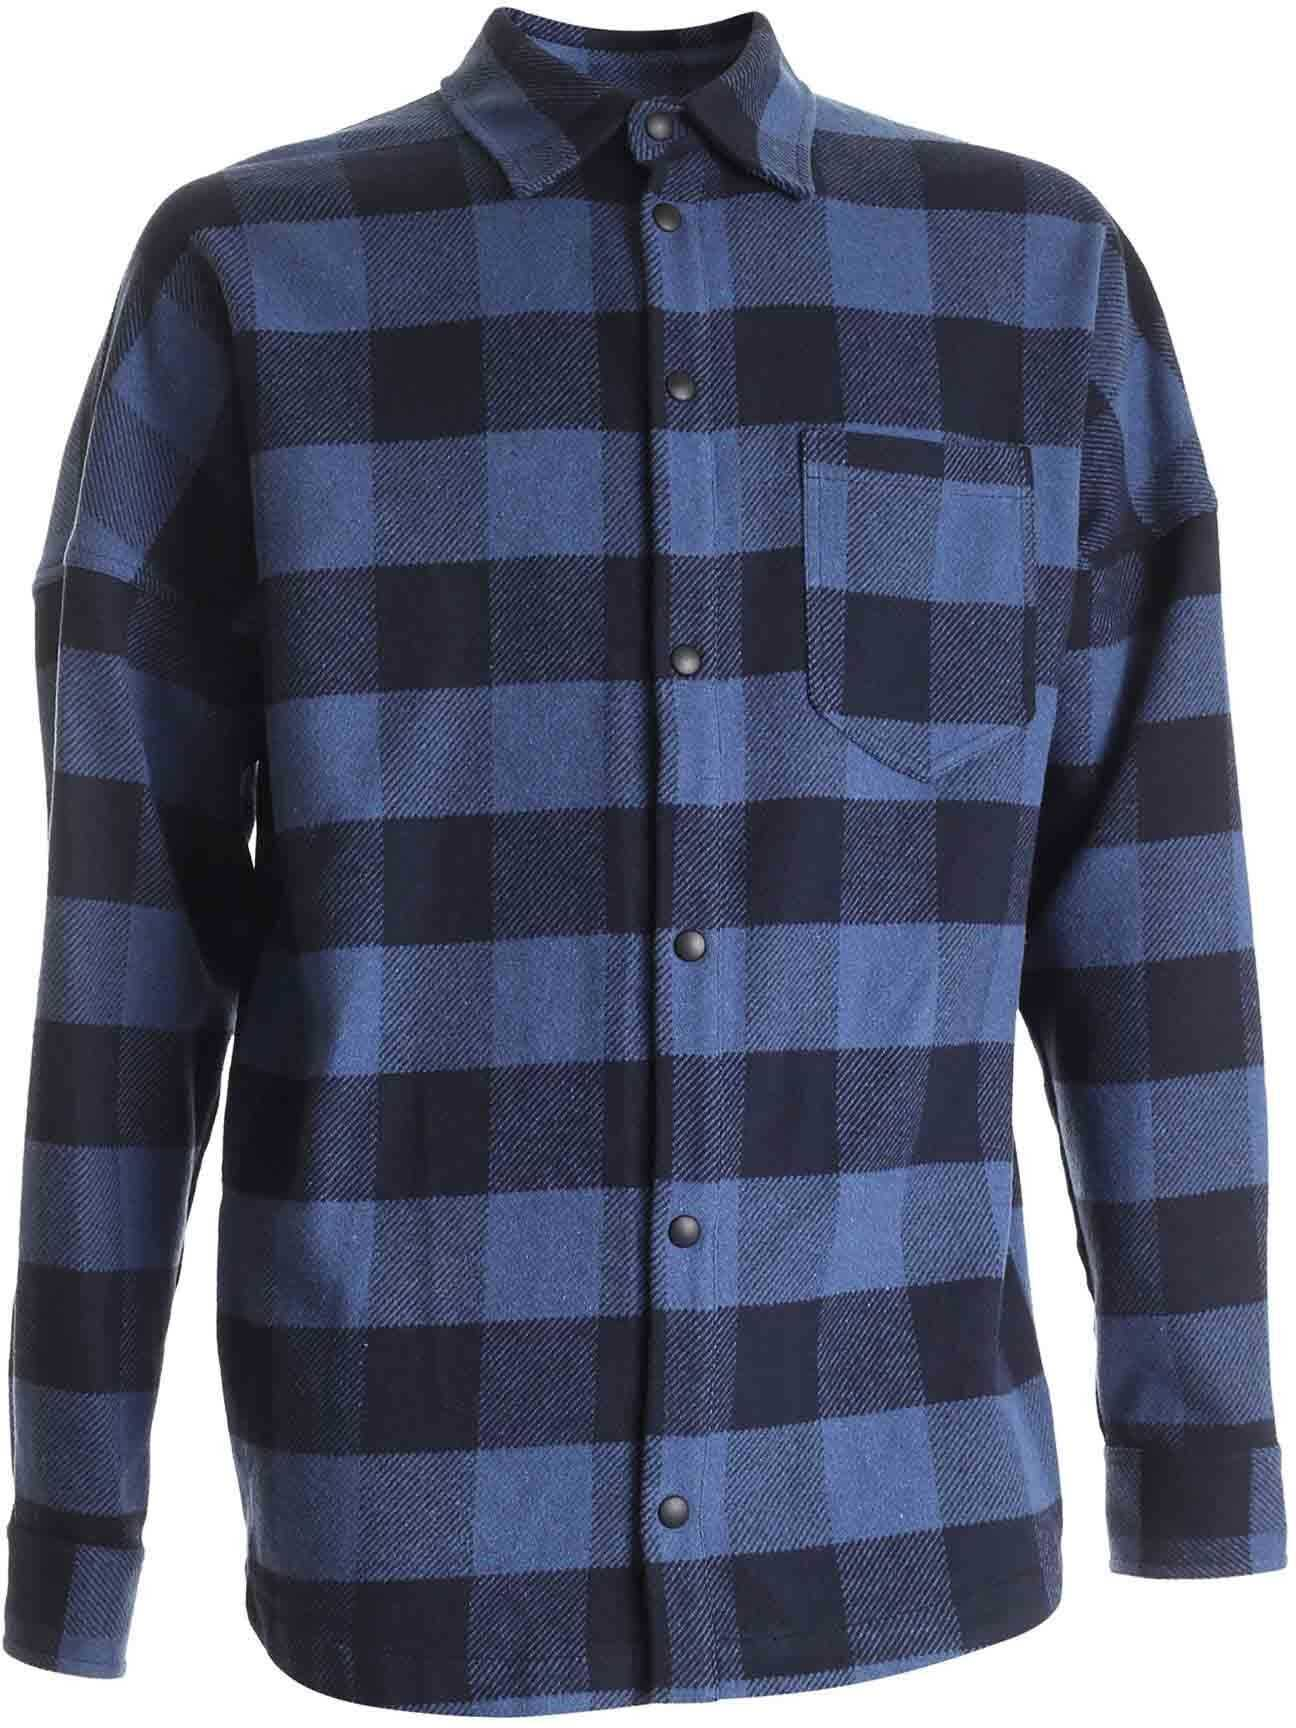 Palm Angels Checked Shirt In Black And Blue Blue imagine